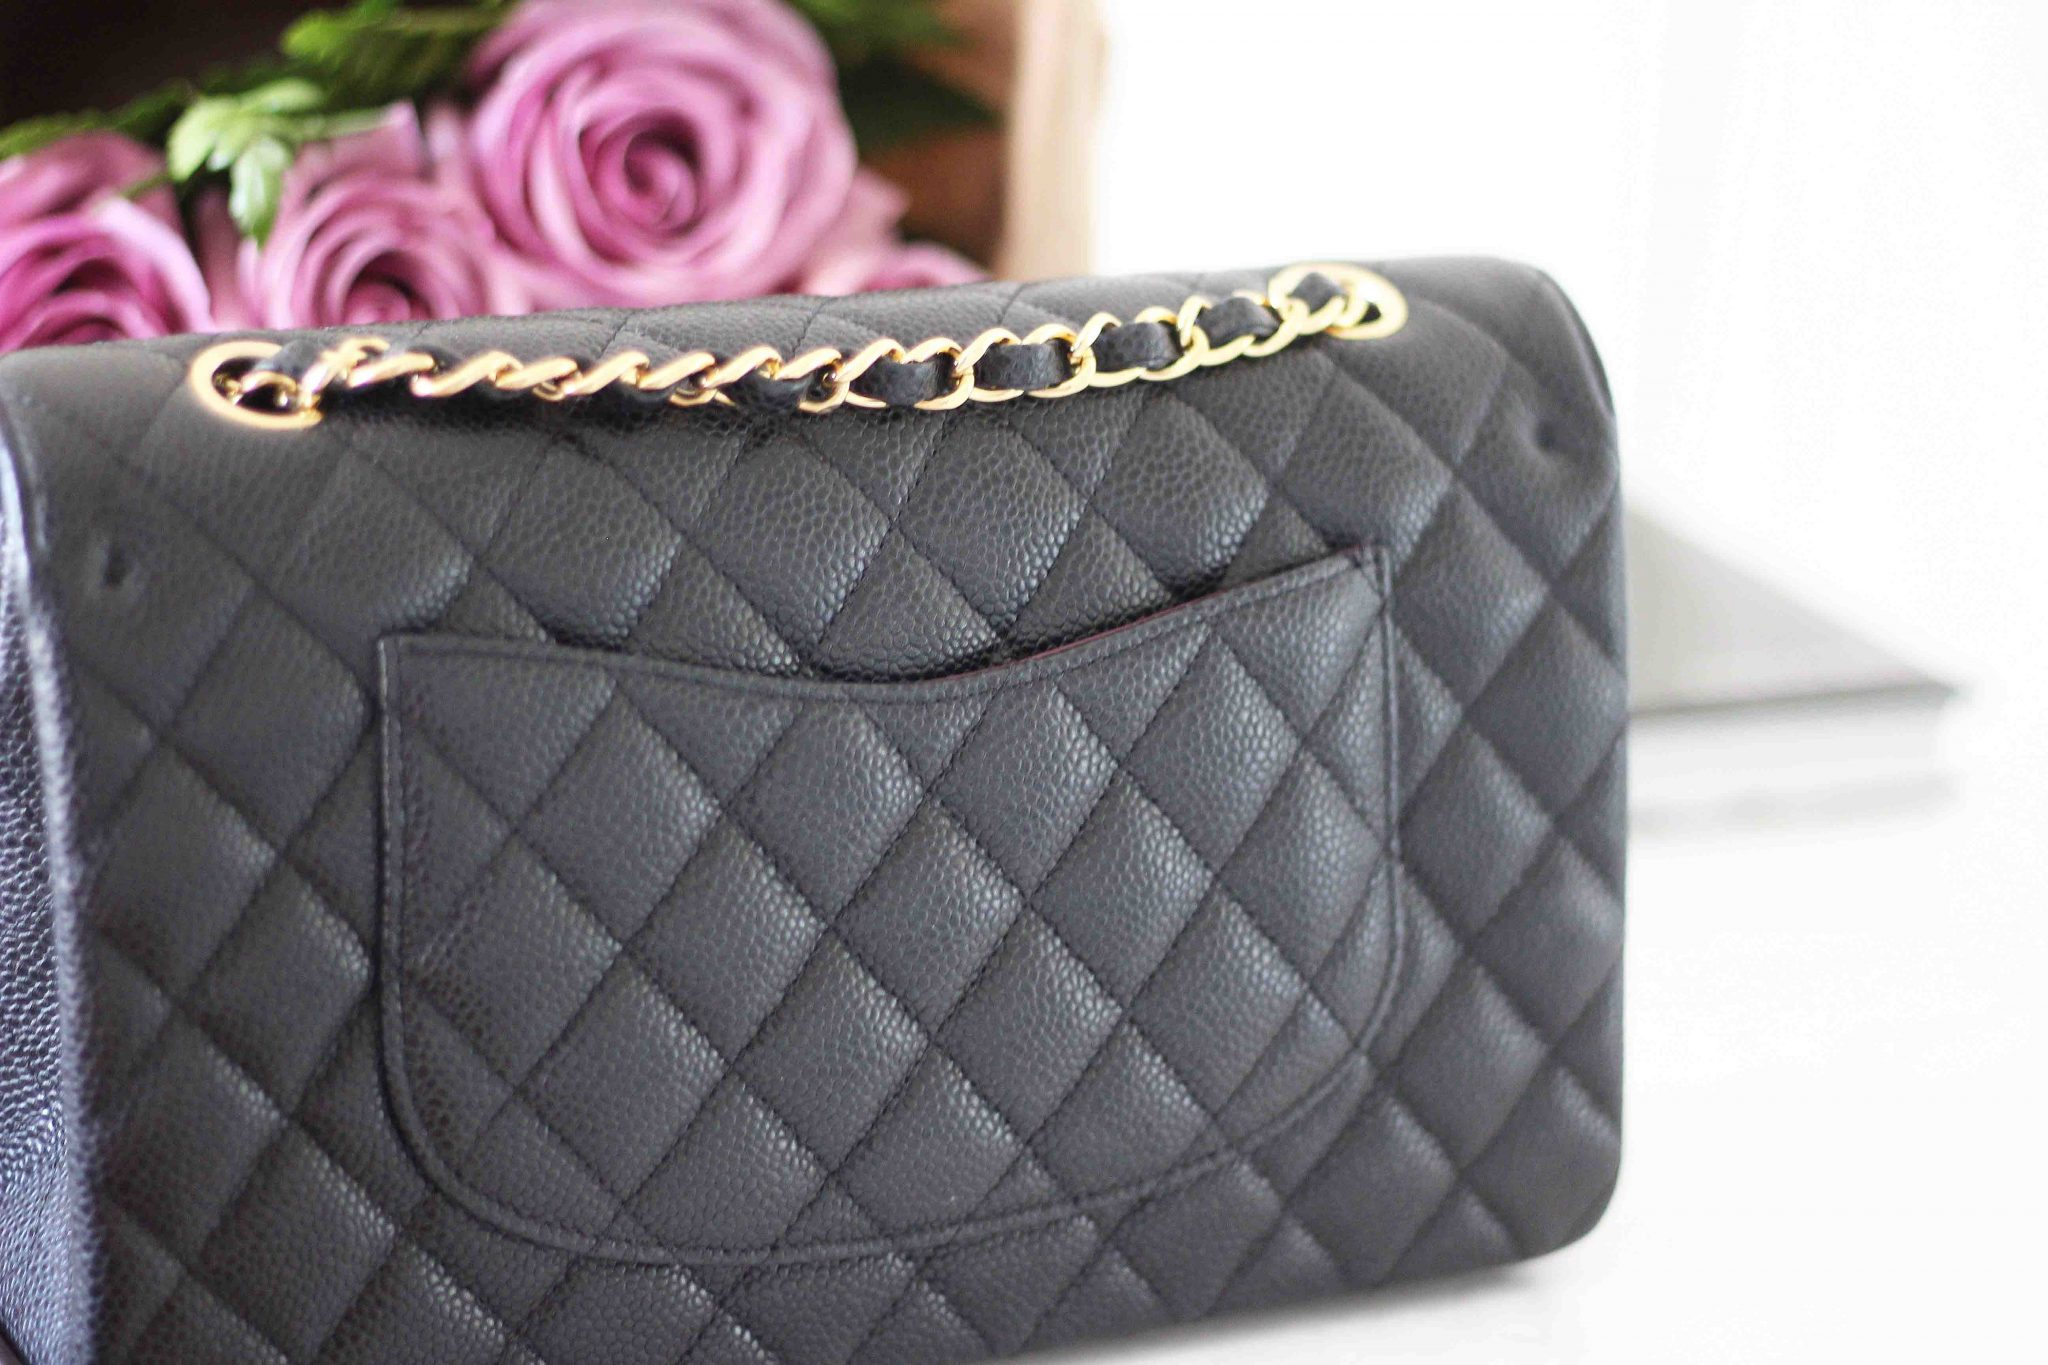 5a79b3194 sparkleshinylove Comparing the Gucci GG Matelassé to the Chanel Classic  Flap Bag ...